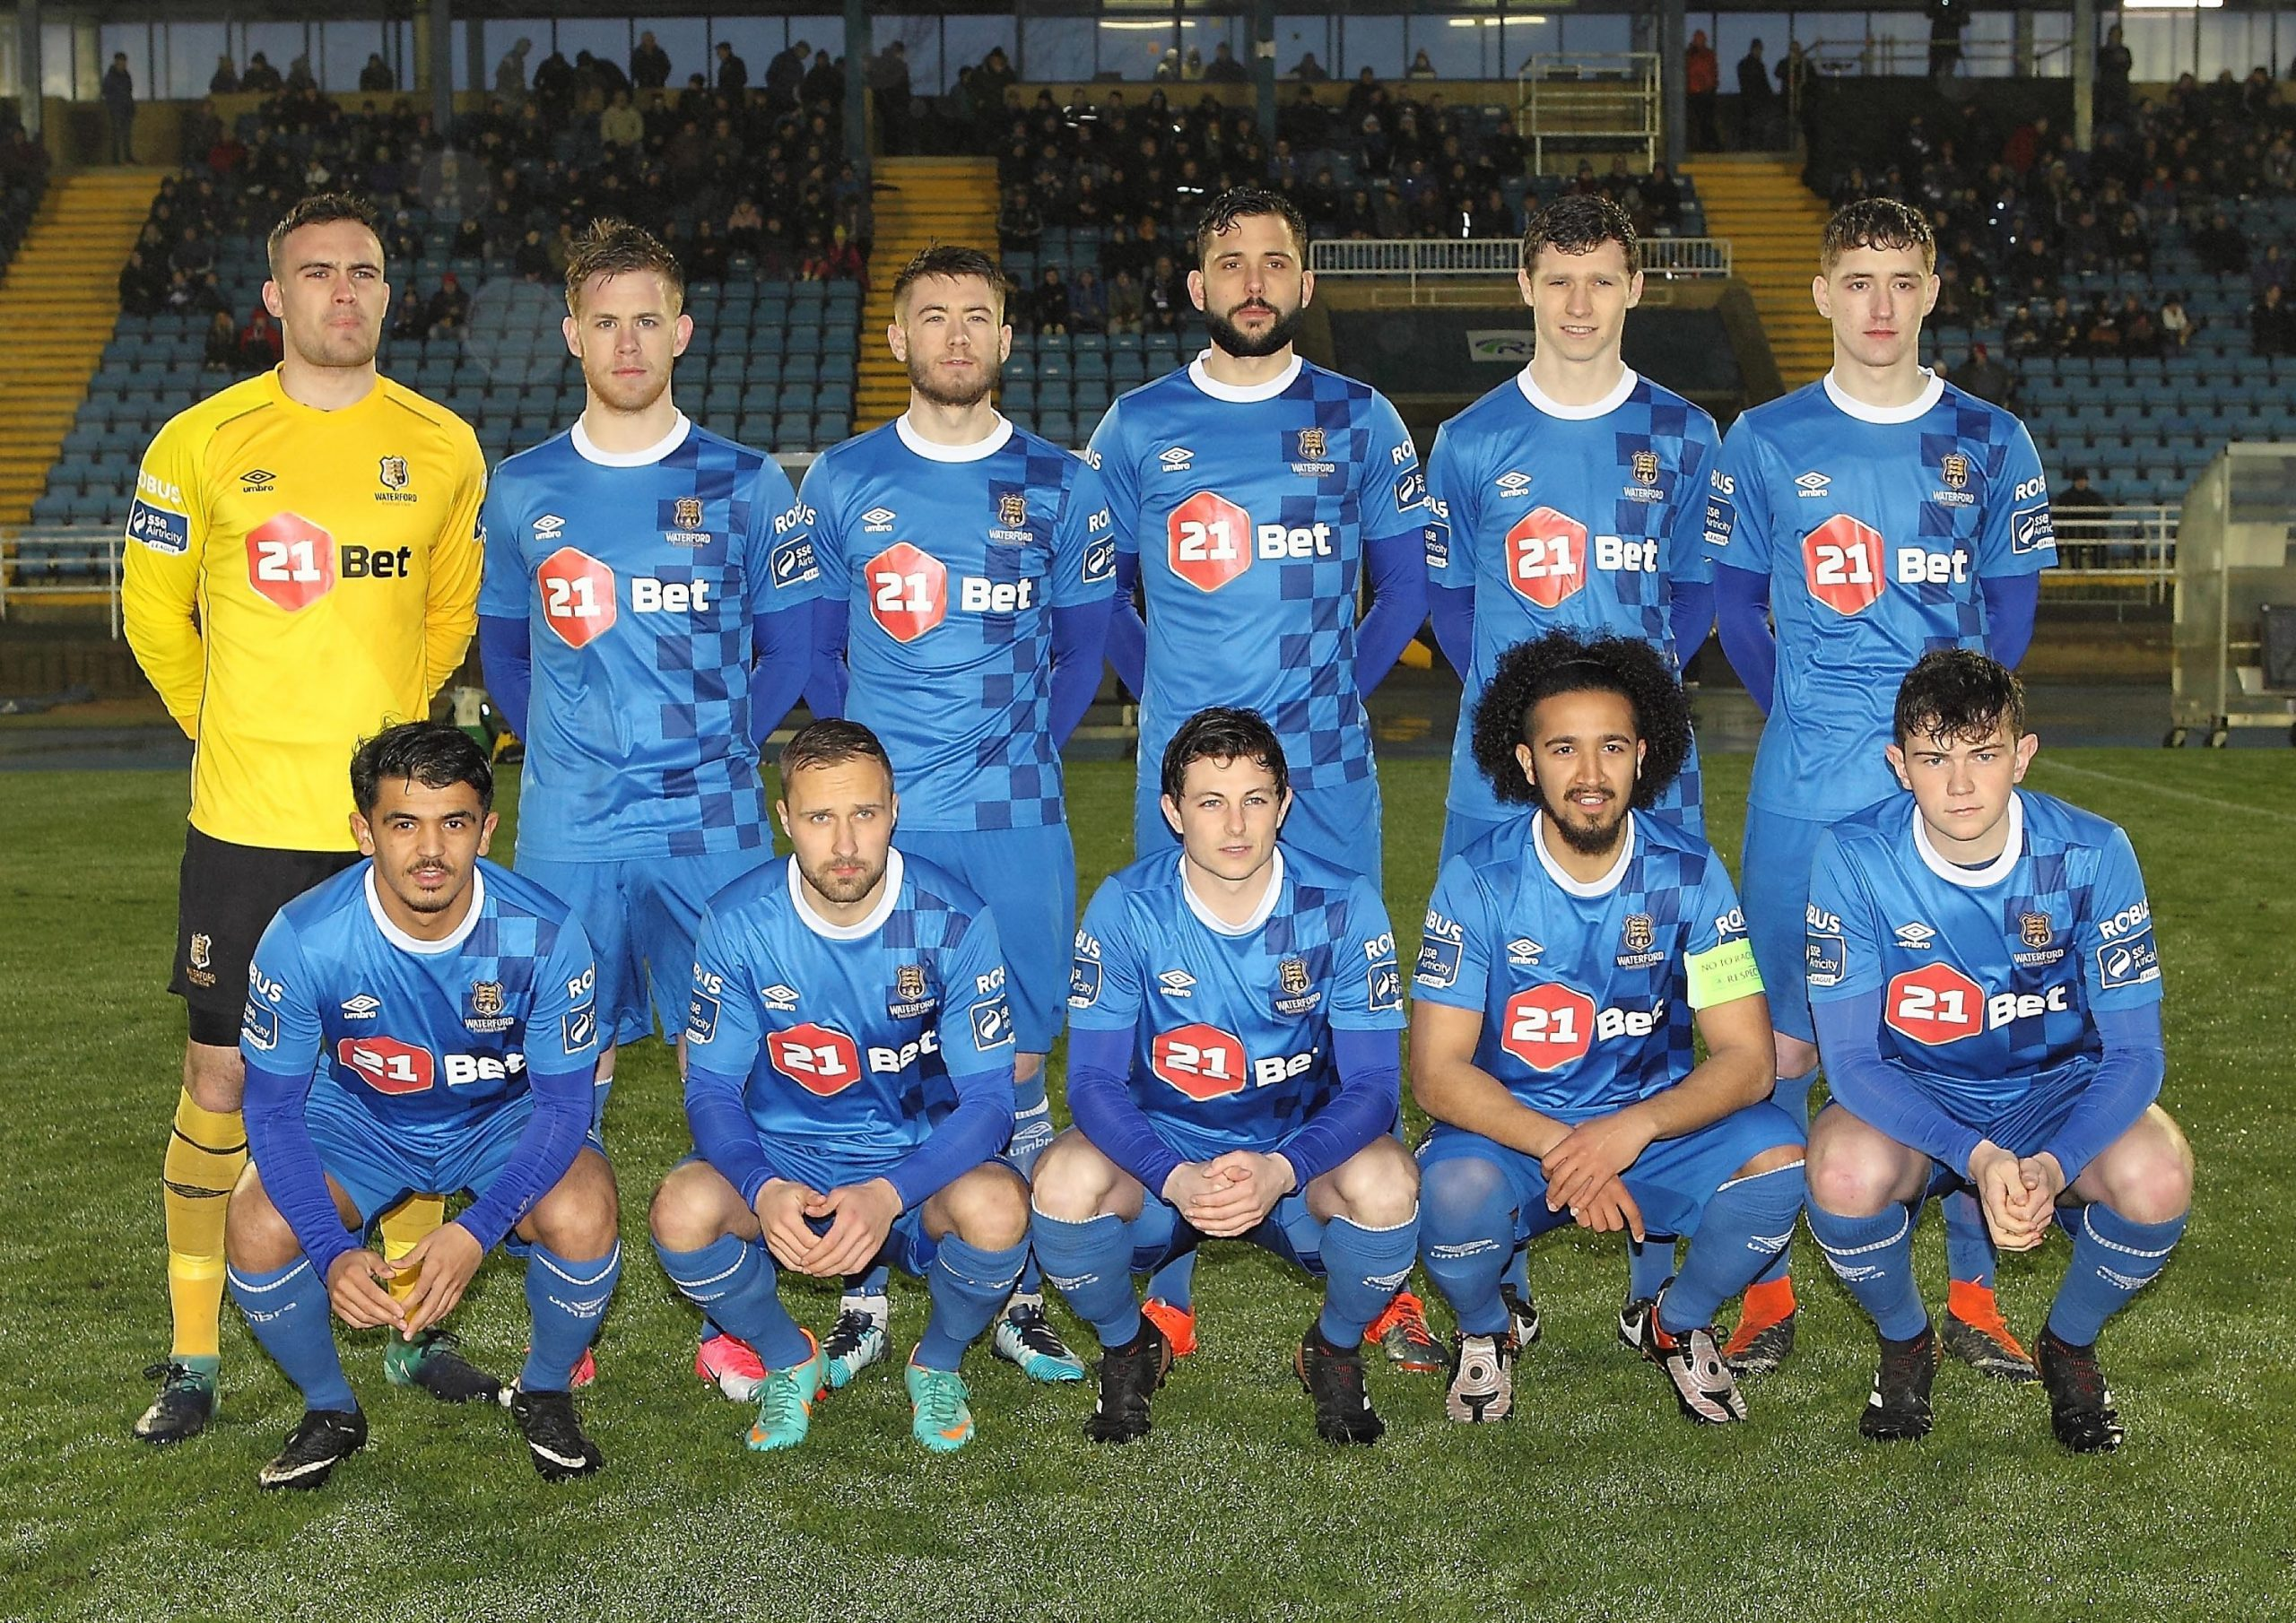 Waterford FC will host Bohemians at the RSC this evening in the Airtricity League Premier Division.